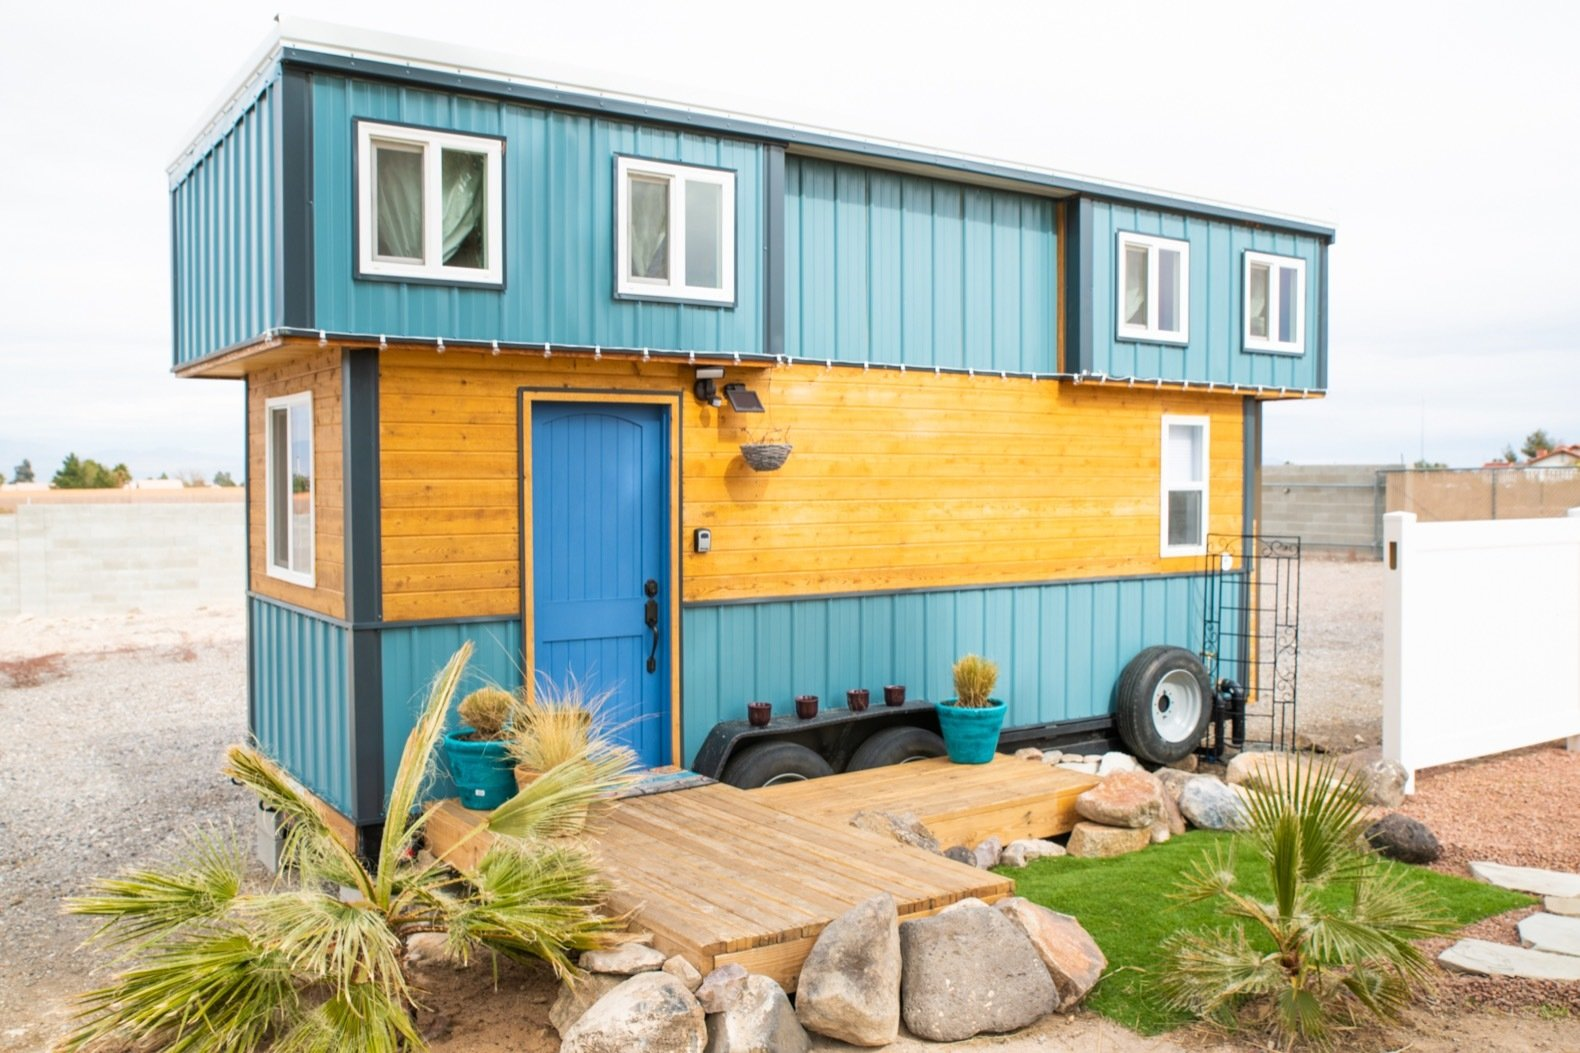 A Couple Escapes Debt by Building a Tiny House For Under $20K